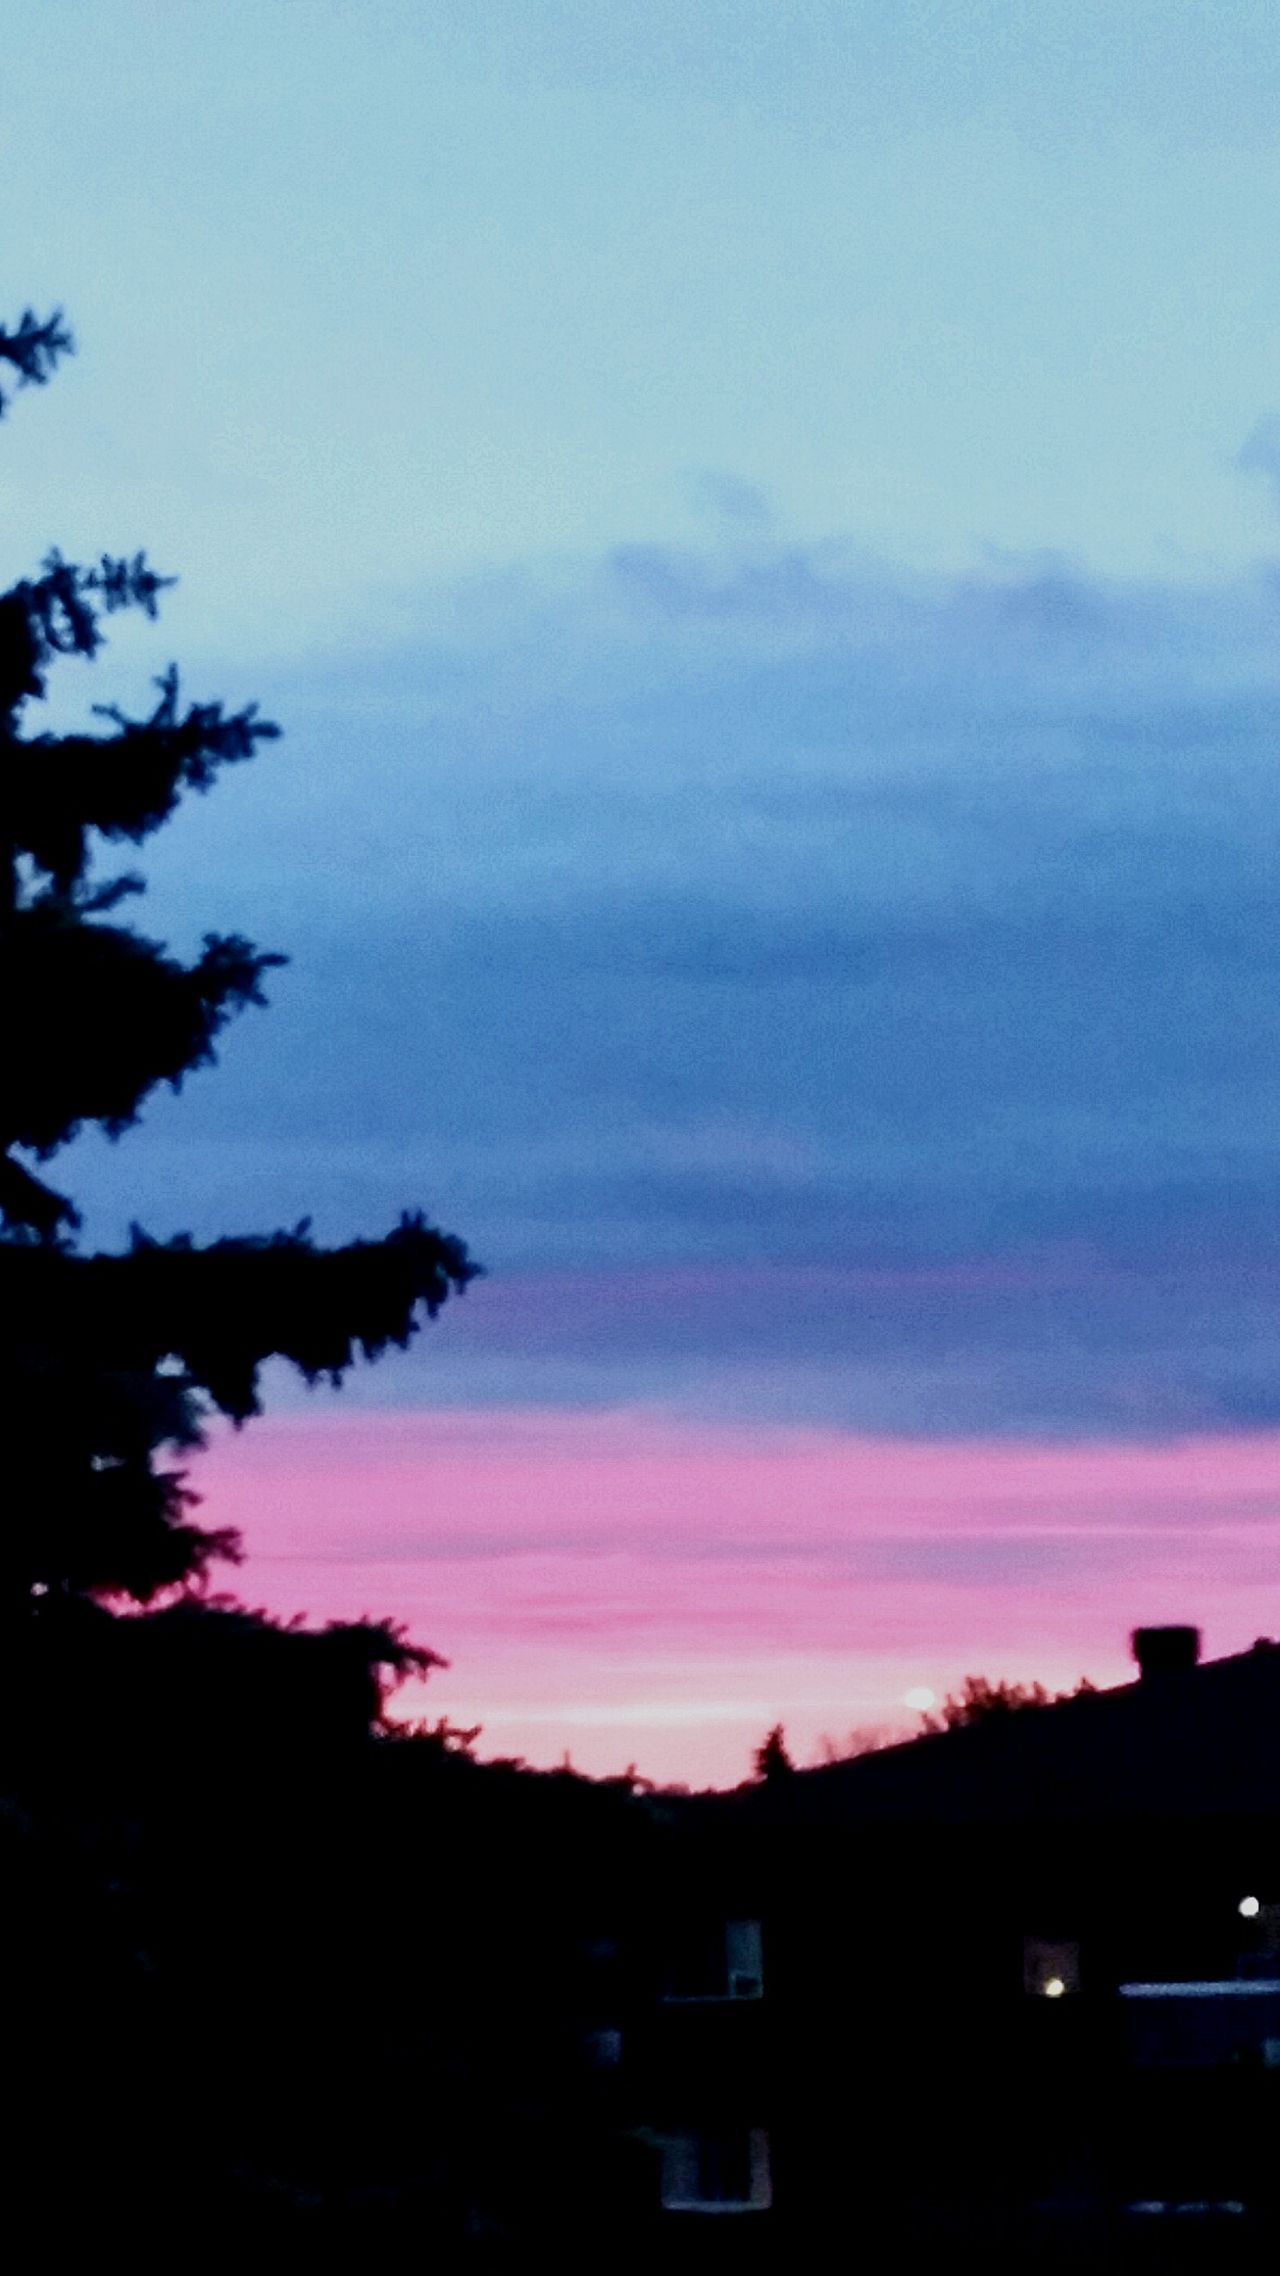 Evening sky of gatineauxxx. Love,light,truth